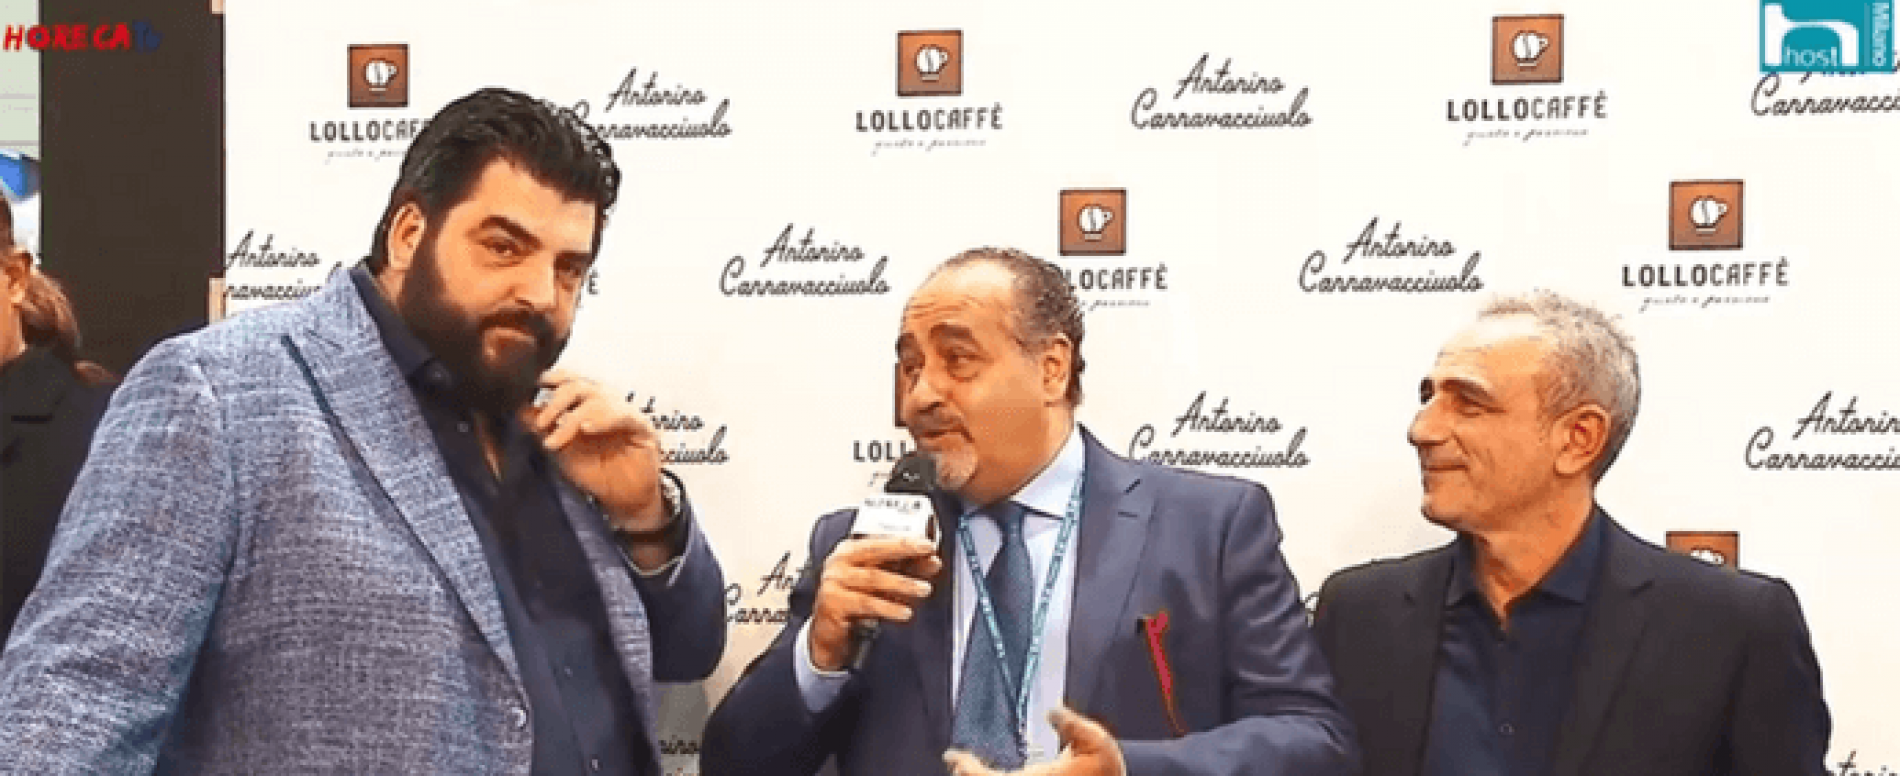 Con Lollo Caffè e #antoninochef parte HorecaTv.it